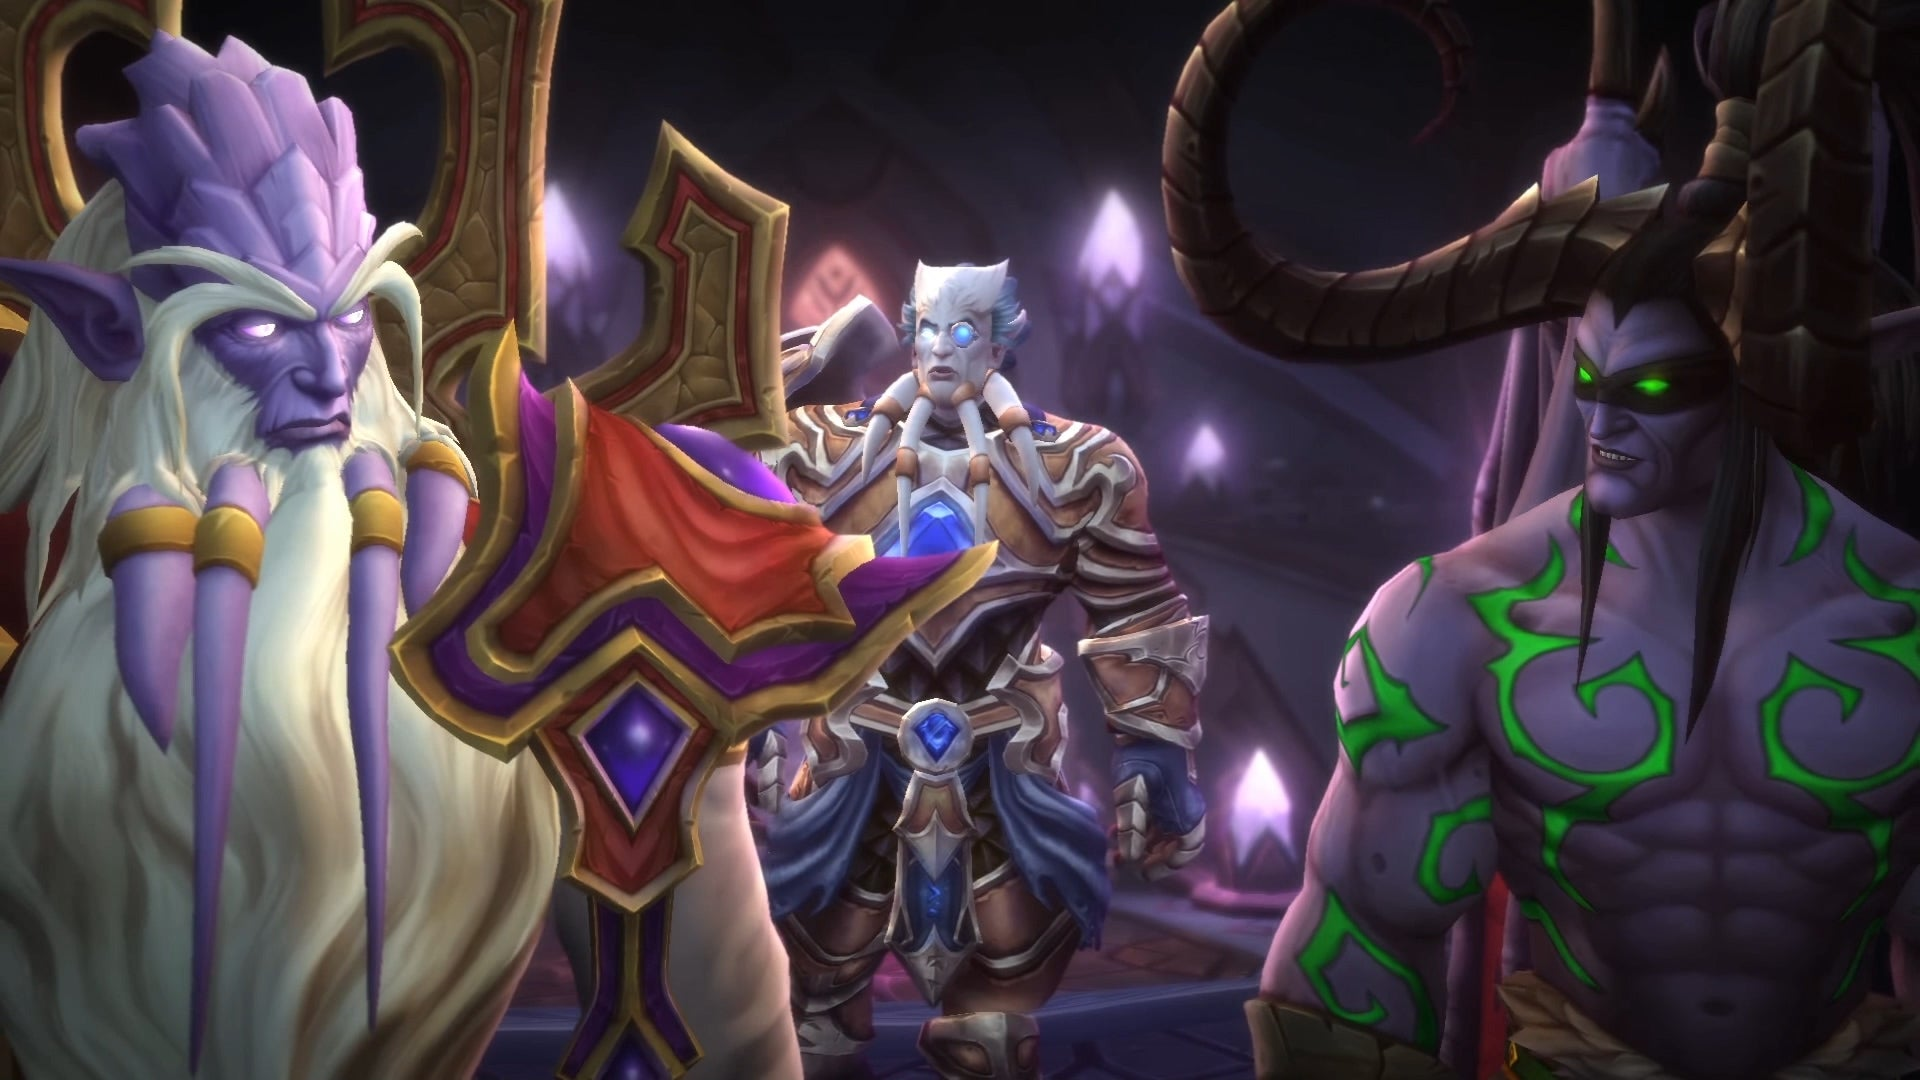 World Of Warcraft's Latest Would Have Made A Great Expansion